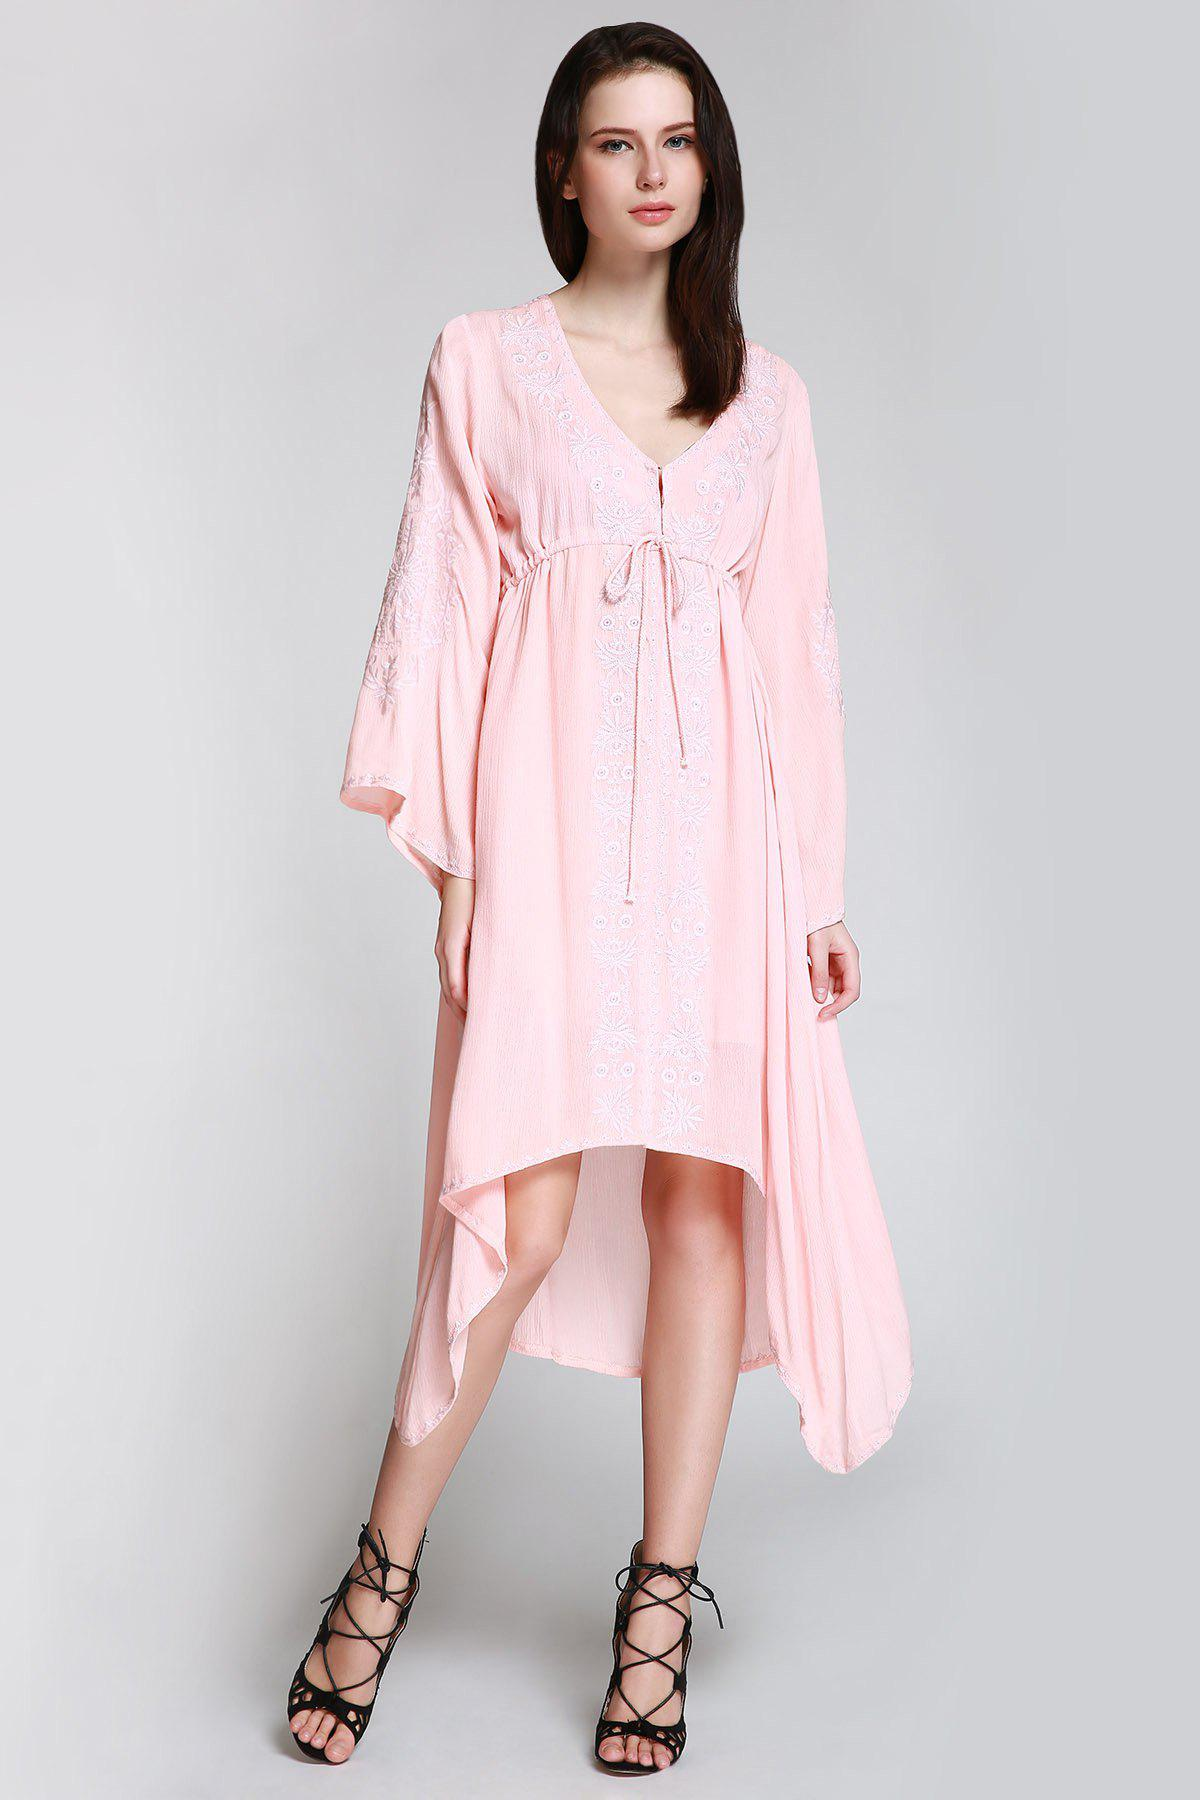 Flare Sleeve Shapeless Embroidered Dress - SHALLOW PINK L